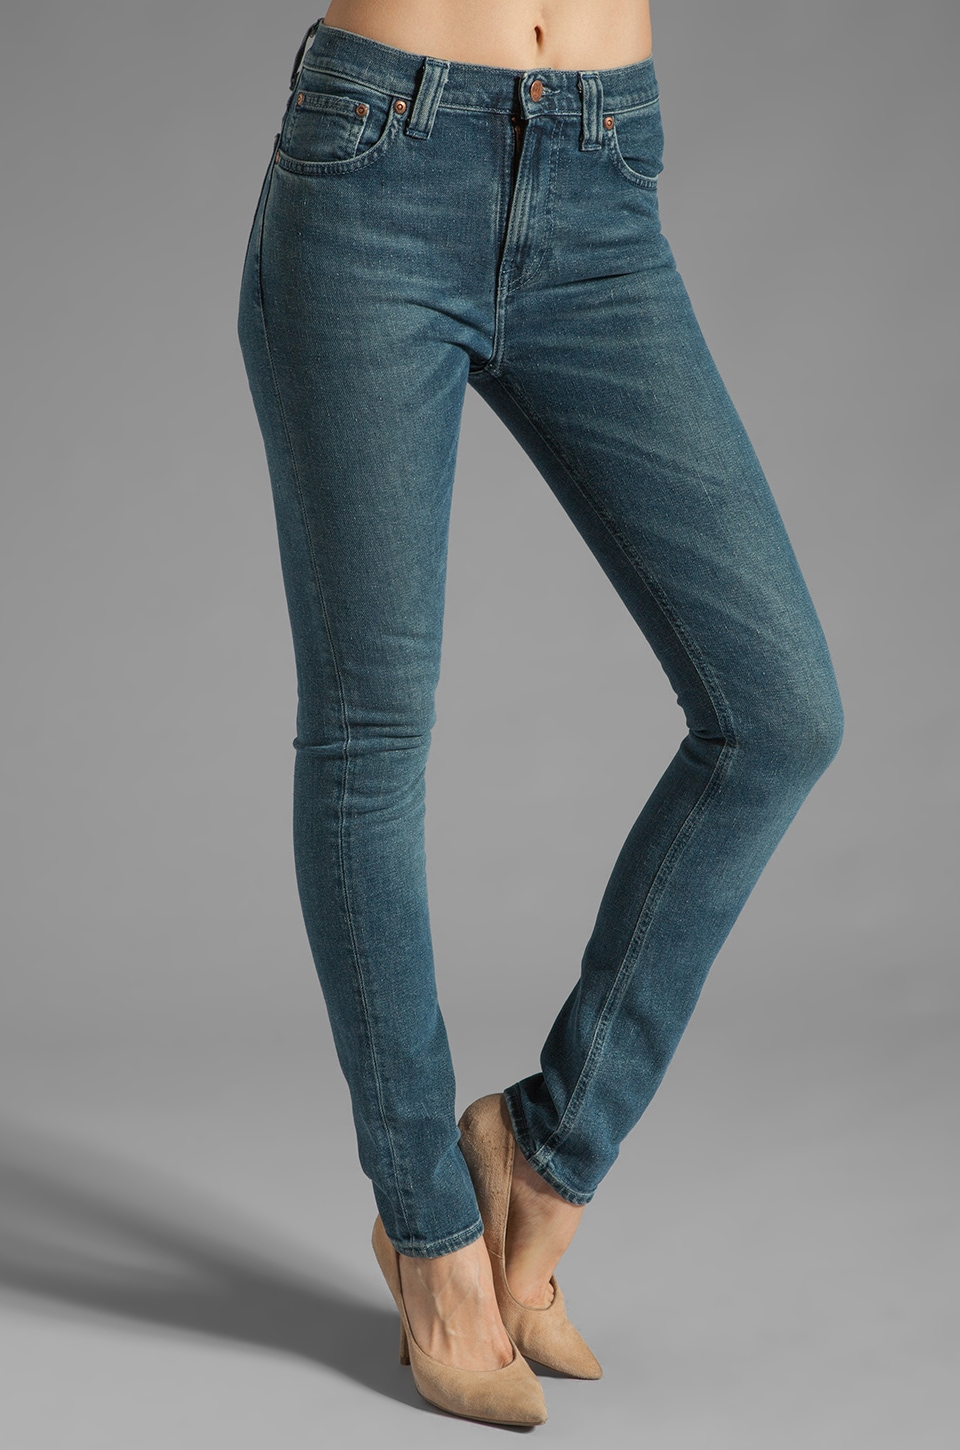 Nudie Jeans High Kai in Organic Worn Twill